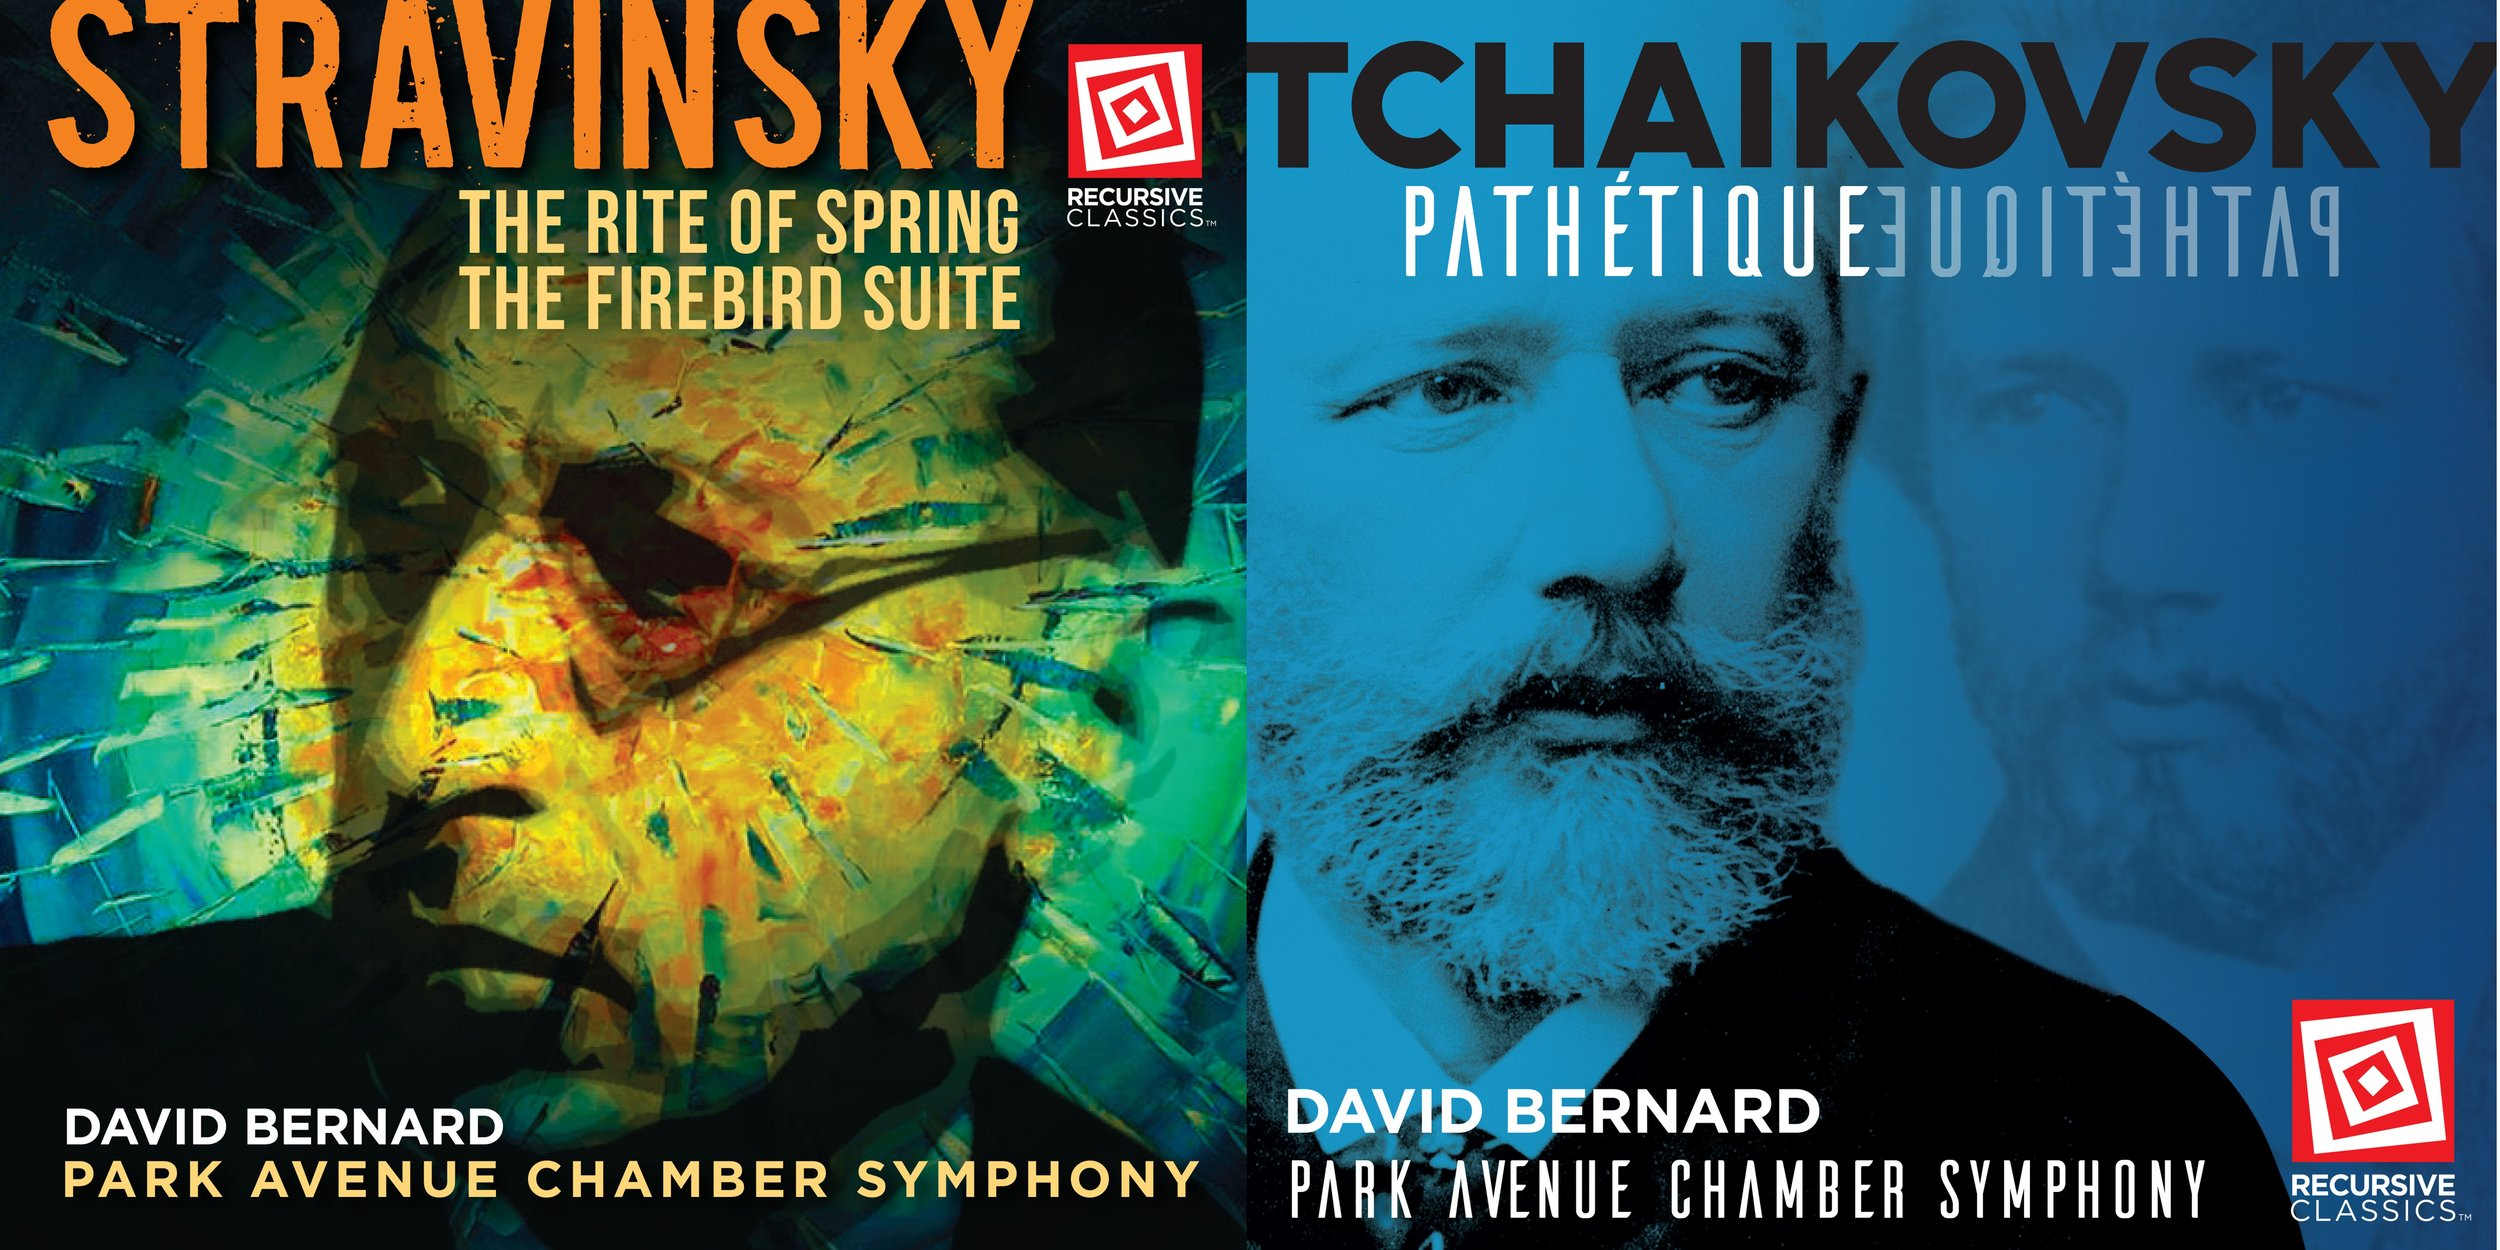 "Recordings & Scholarship - David Bernard's recordings have received enthusiastic critical praise. His release of Tchaikovsky's Pathétique was lauded by Gramophone Magazine as ""…an impressively elegant, thoughtful, well‑balanced and sophisticated Tchaikovsky Pathétique."" Of his Beethoven Symphony No. 9 release, The Arts Desk proclaimed ""Scintillating Beethoven…Edge-of-the-seat playing…it's a winner: dramatic, witty, eloquent and boasting some startling choral work in the last movement."" His complete recorded Beethoven symphony cycle was praised by Fanfare magazine for its ""intensity, spontaneity, propulsive rhythm, textural clarity, dynamic control, and well-judged phrasing"". Of his recent premiere recording of new editions of Stravinsky's The Rite of Spring and The Firebird, The Art Music Lounge proclaimed ""this is THE preferred recording of The Rite because of its authenticity as well as the almost startling boldness of approach.""David Bernard has worked with the Edwin F. Kalmus editorial team, led by Clinton F. Nieweg, retired librarian of the Philadelphia Orchestra, developing new editions of Stravinsky's ""The Rite of Spring"" and ""The Firebird Suite—1919 Version,"" which has been published in 2016. In addition, he has published his own editions of Mozart's Clarinet Concerto, K. 622, and Schumann's Symphony No. 2, Op. 61."